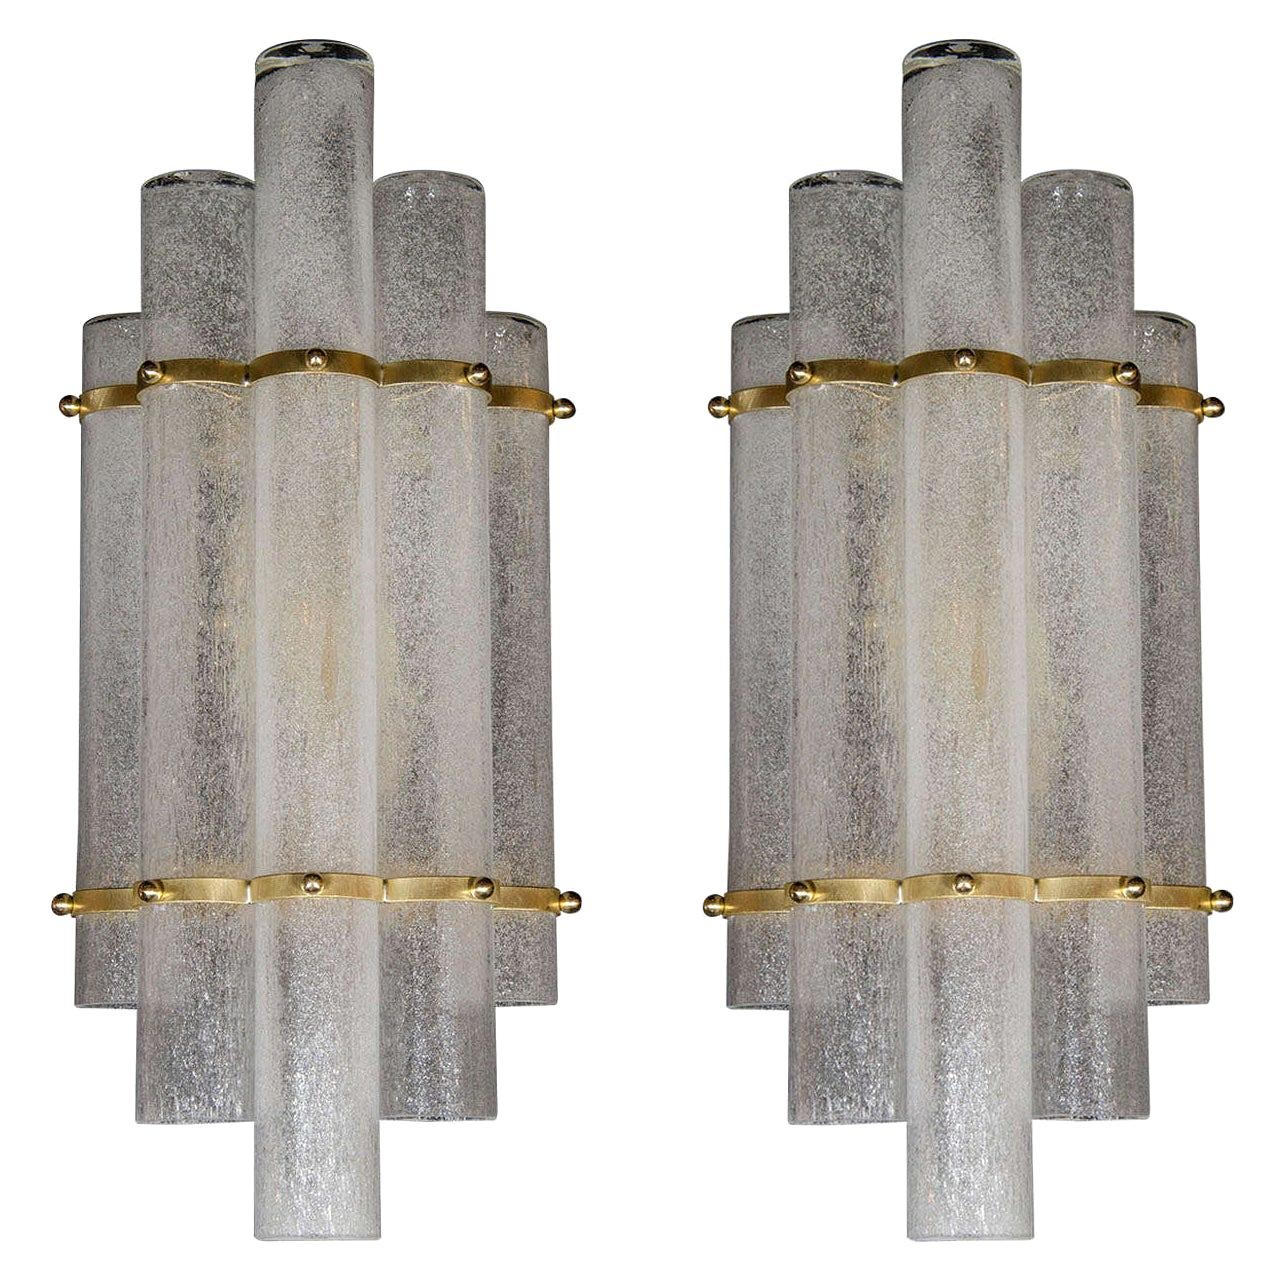 """Pair of Modernist Hand Blown Murano Glass """"Pulegoso"""" Sconces with Brass Fittings"""